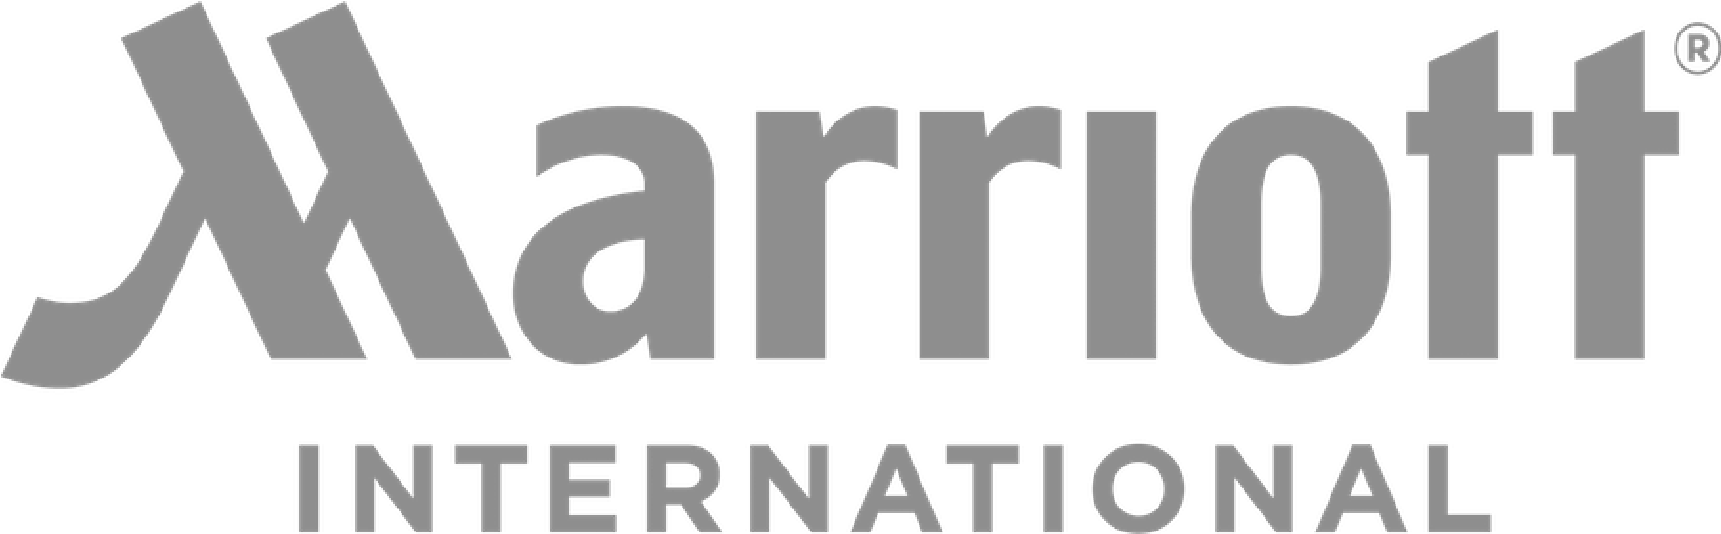 HD Marriott International Logo.